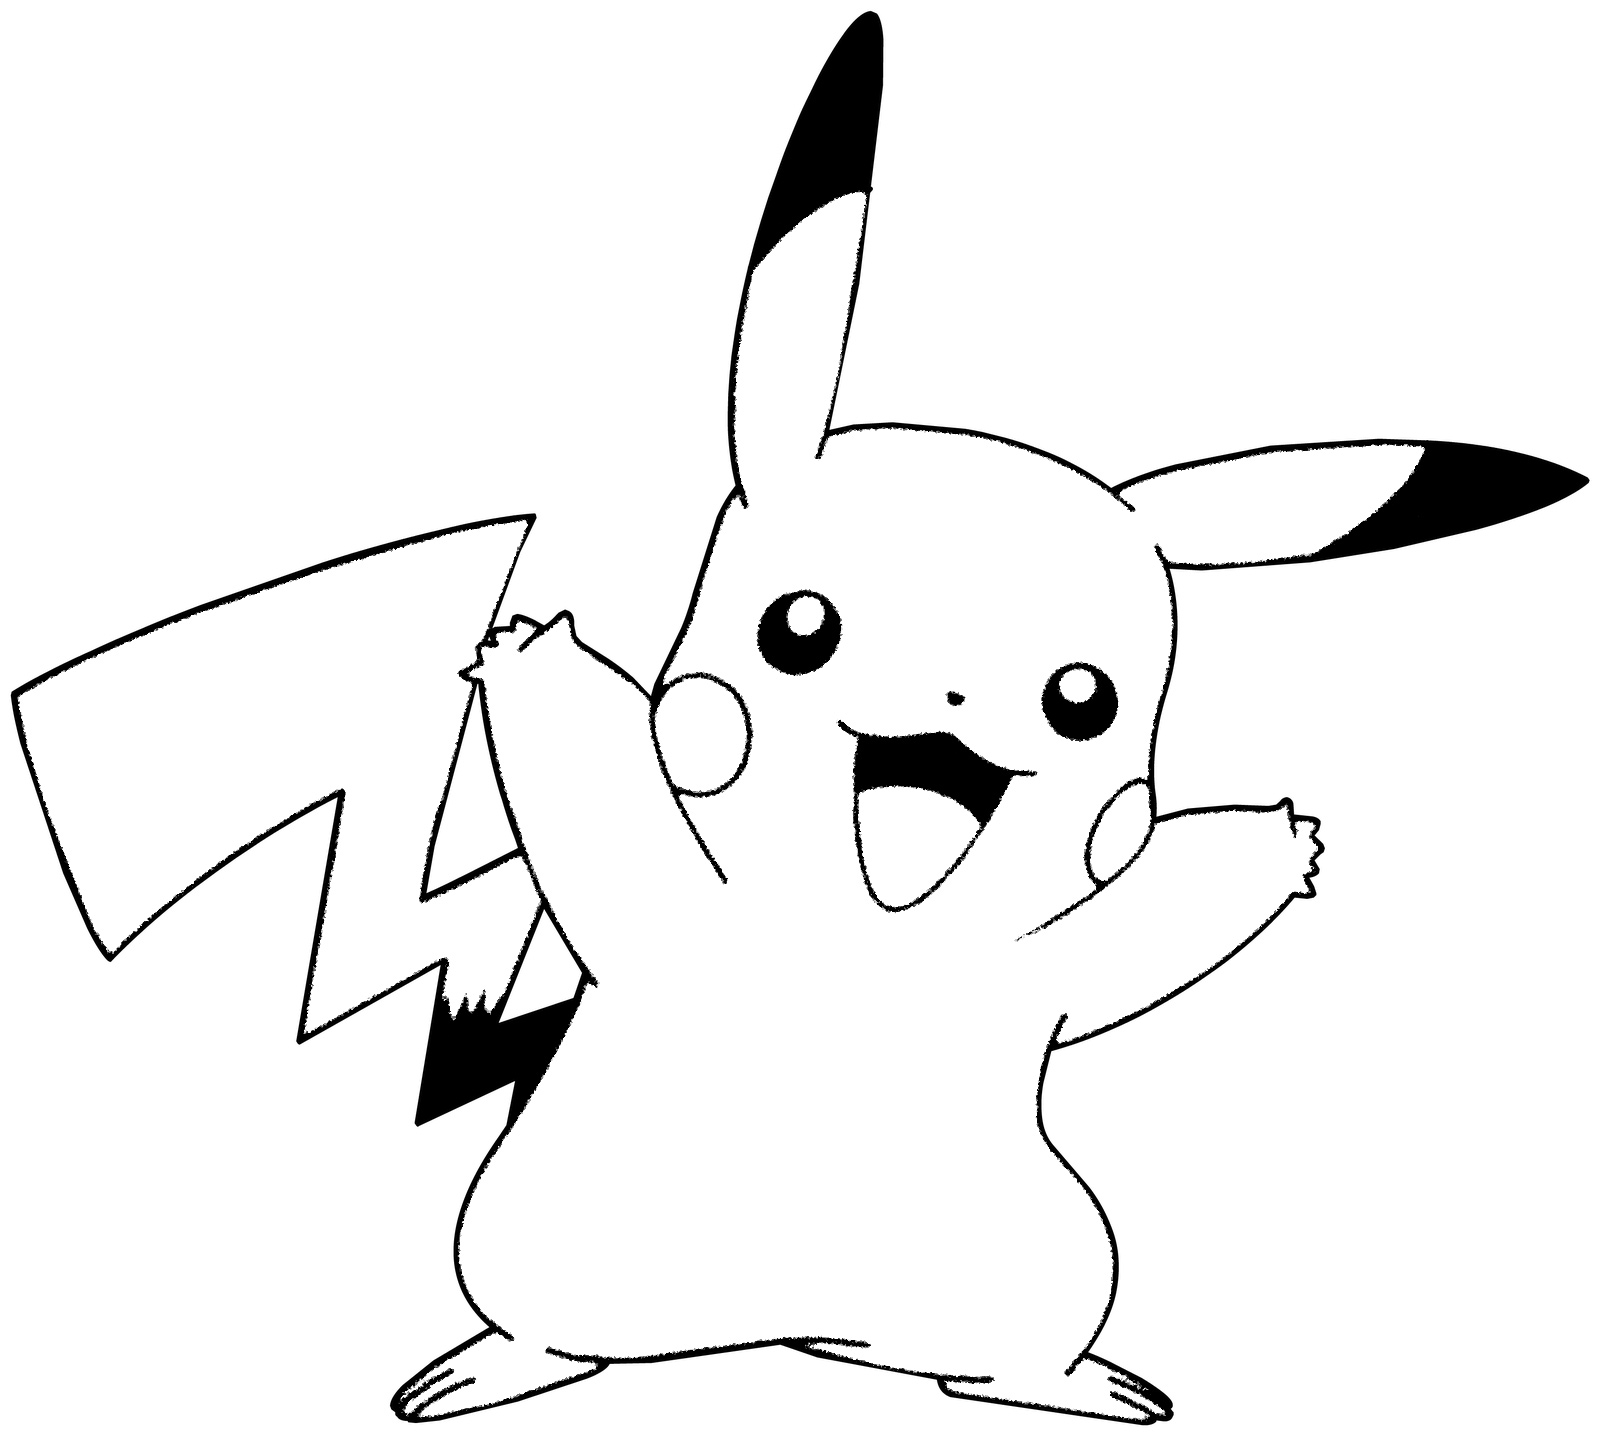 picachu coloring pages 10 free pikachu coloring pages for kids pages picachu coloring